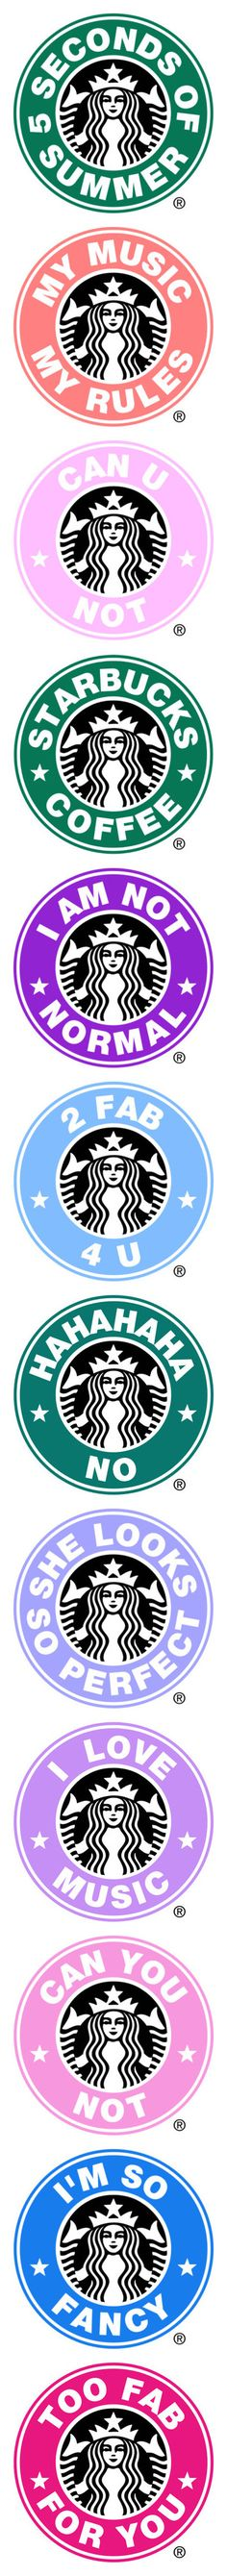 """Starbucks Logos"" by enchantedbrunette ❤ liked on Polyvore featuring starbucks, logos, starbuckslogos, 5sos, fillers, starbucks logo, 5 seconds of summer, backgrounds, circle and circular"